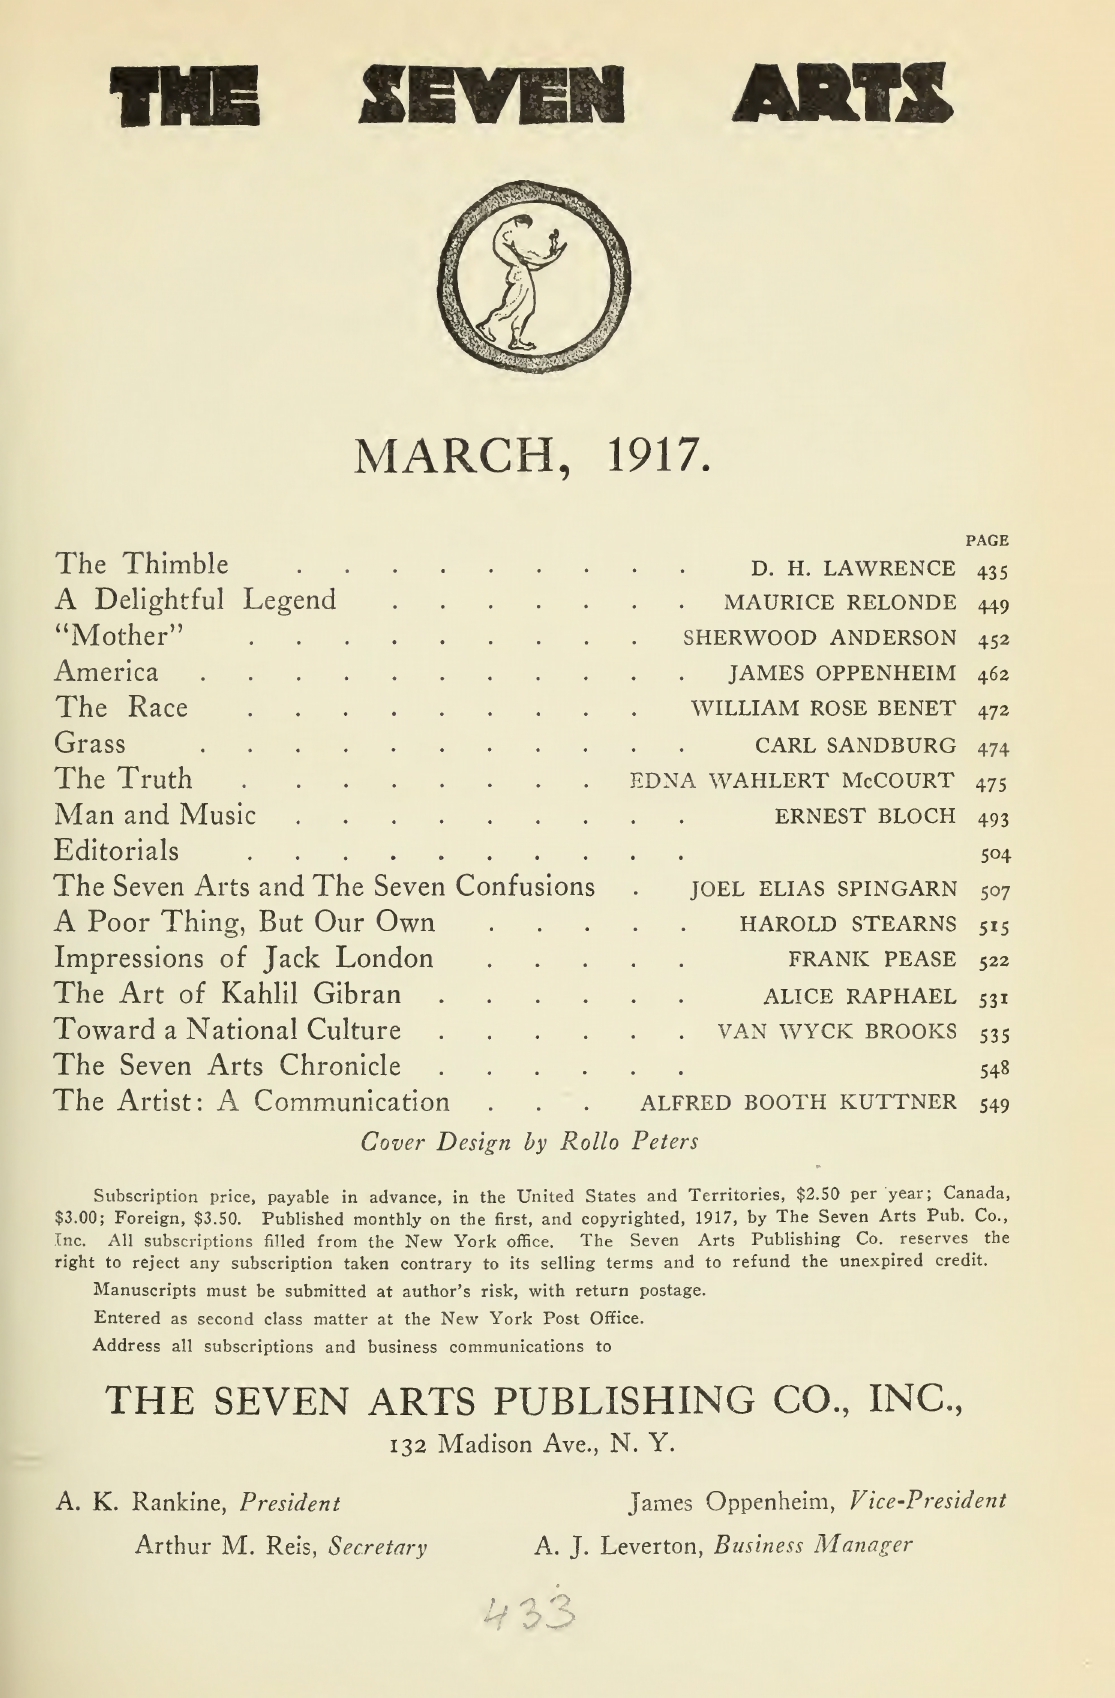 Alice Raphael, The Art of Kahlil Gibran, The Seven Arts, March, 1917